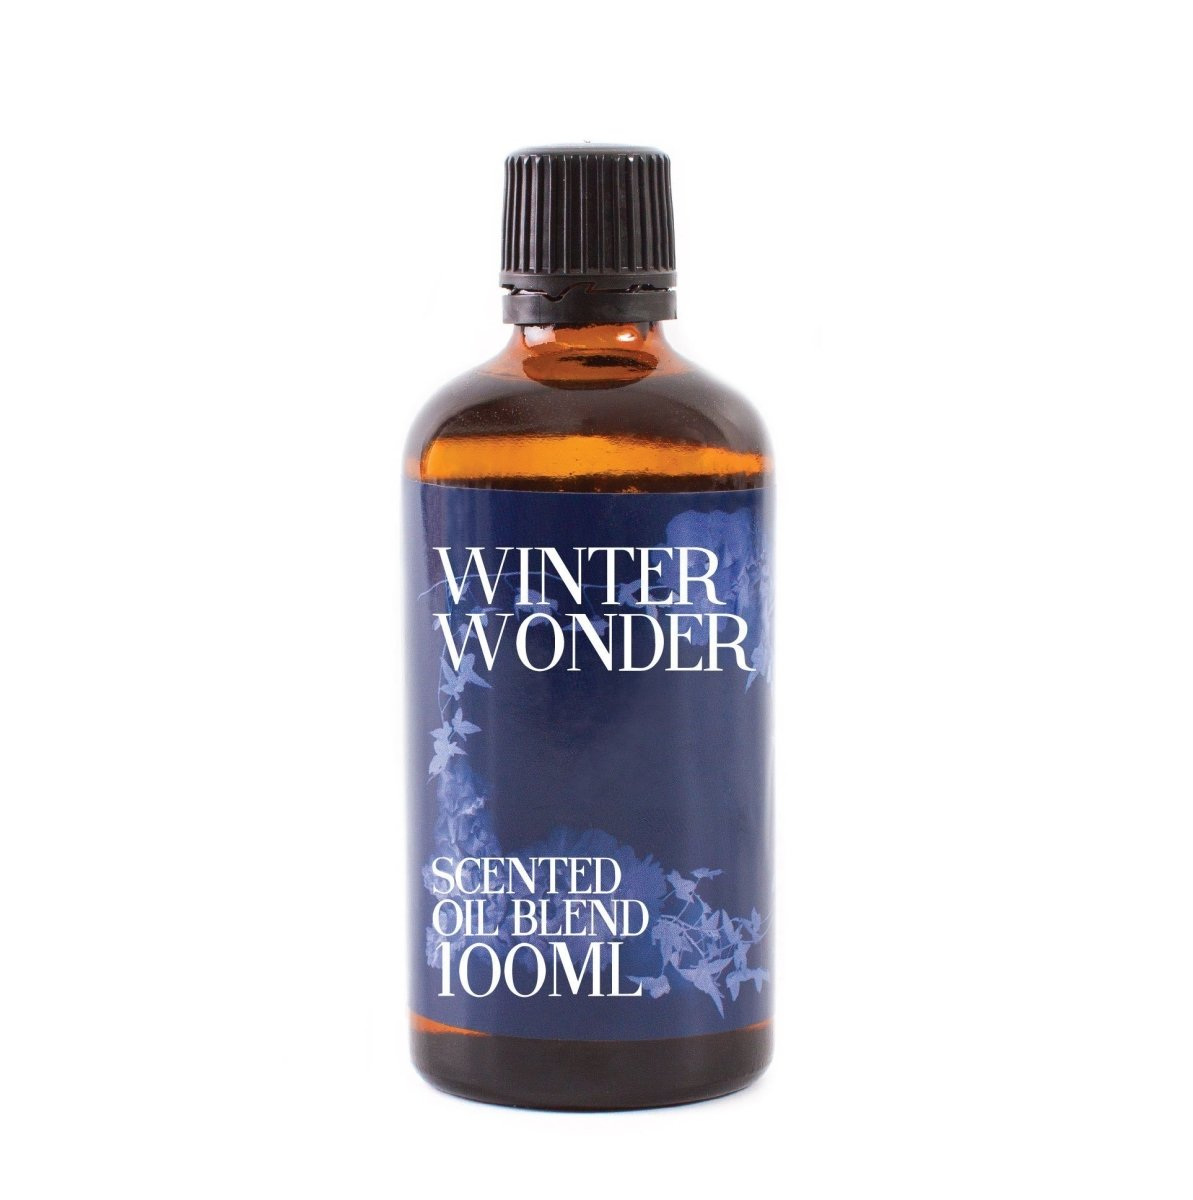 Winter Wonder - Scented Oil Blend - Mystic Moments UK